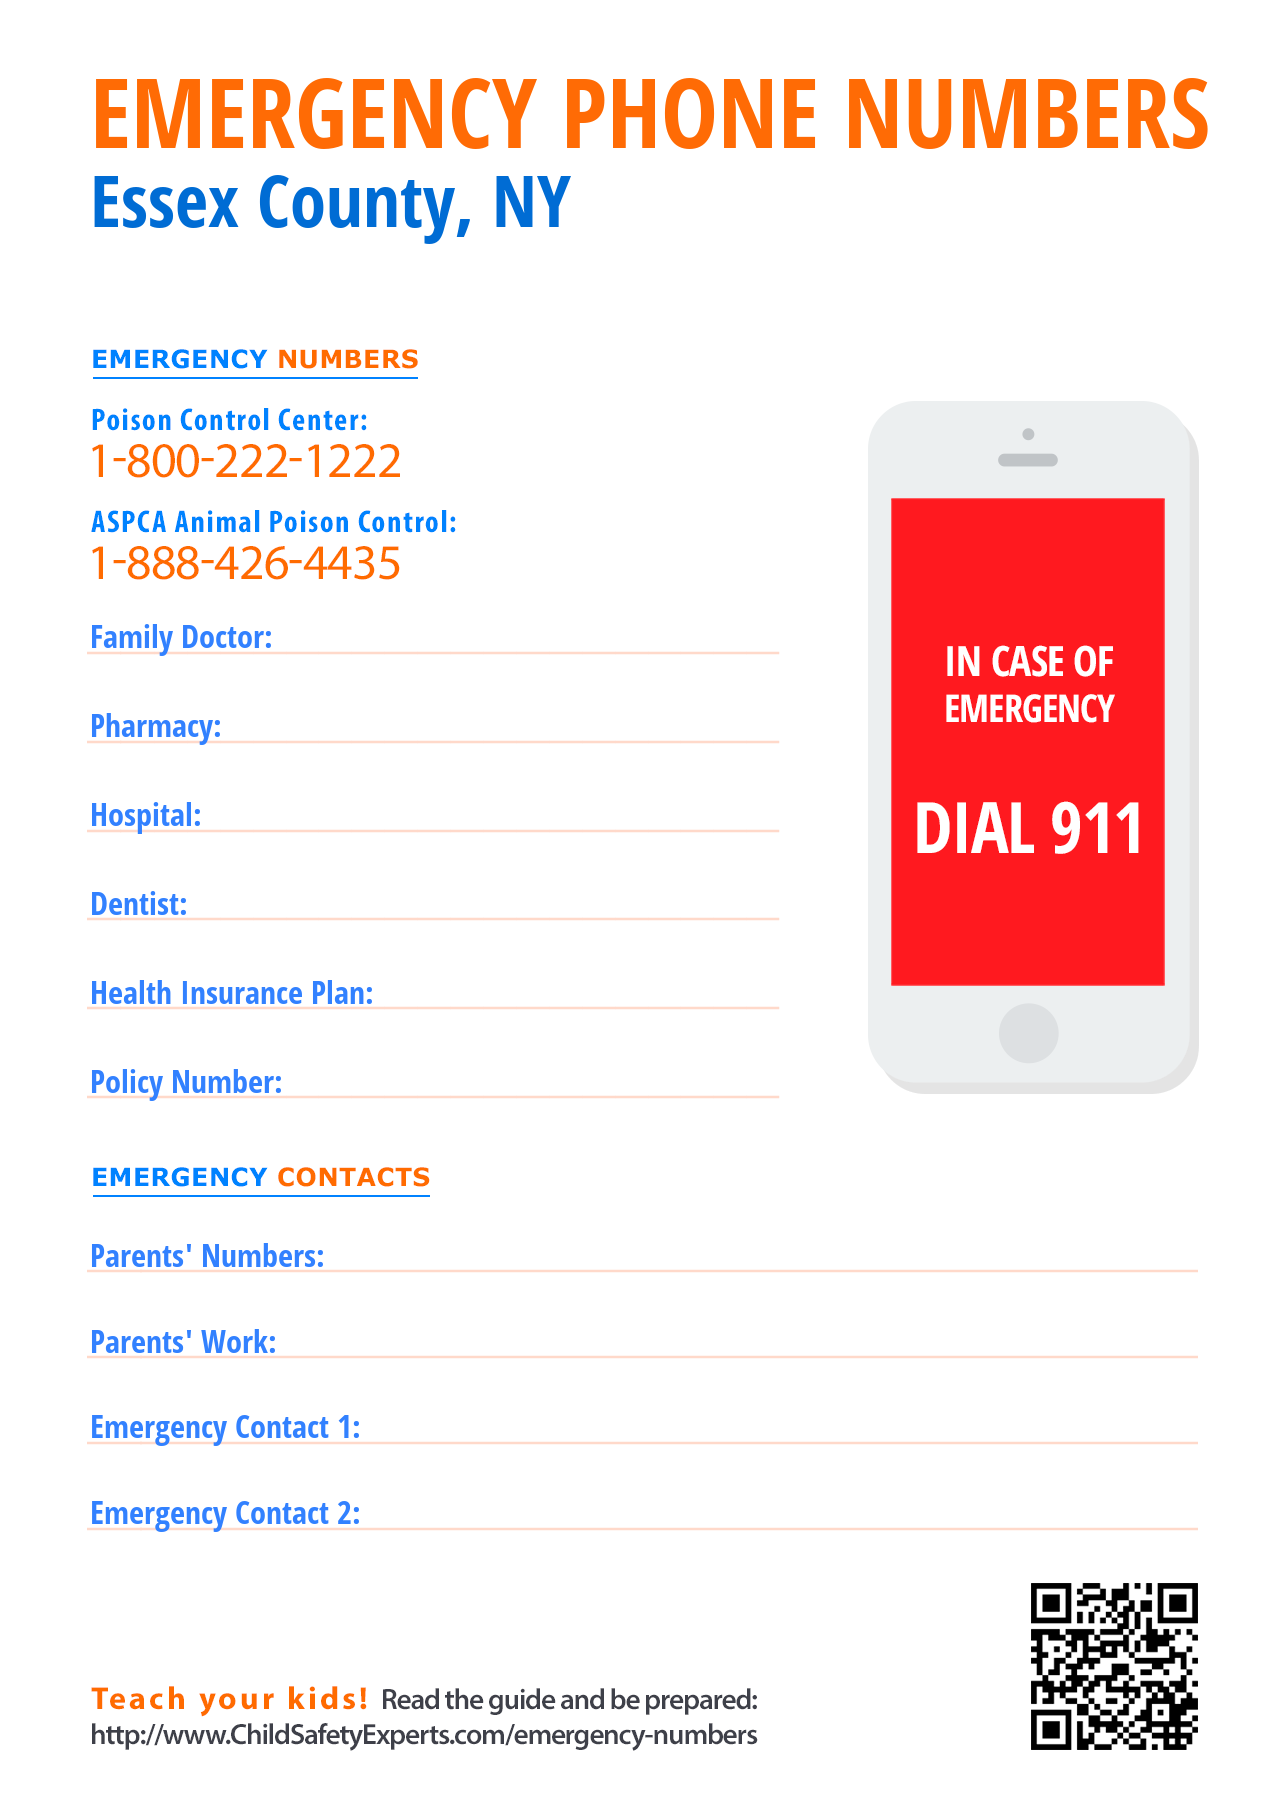 Important emergency phone numbers in Essex County, New York